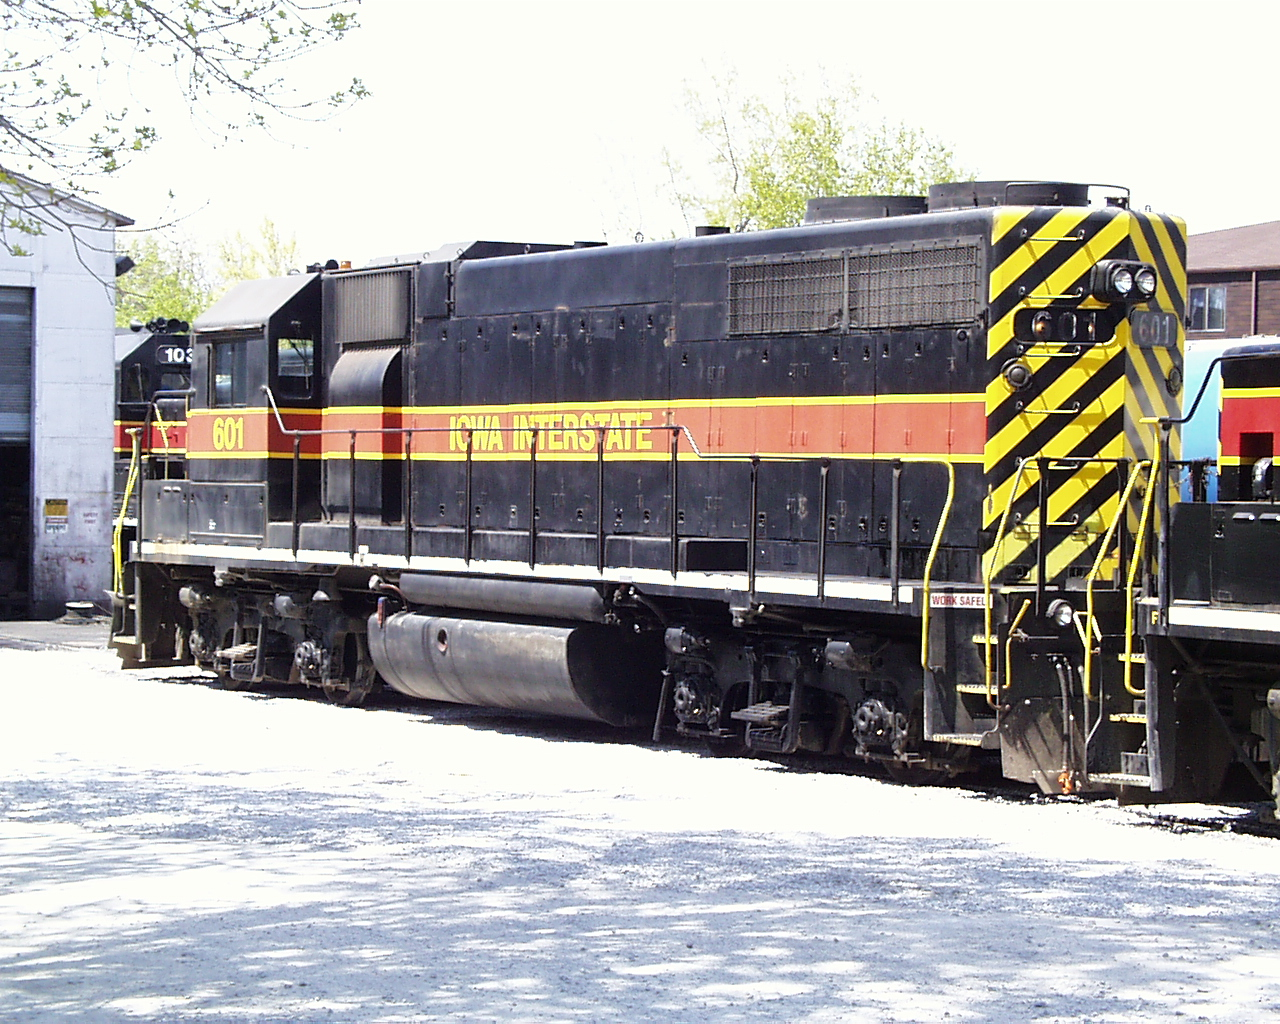 IAIS 601 at Iowa City, IA on 29-Apr-2000